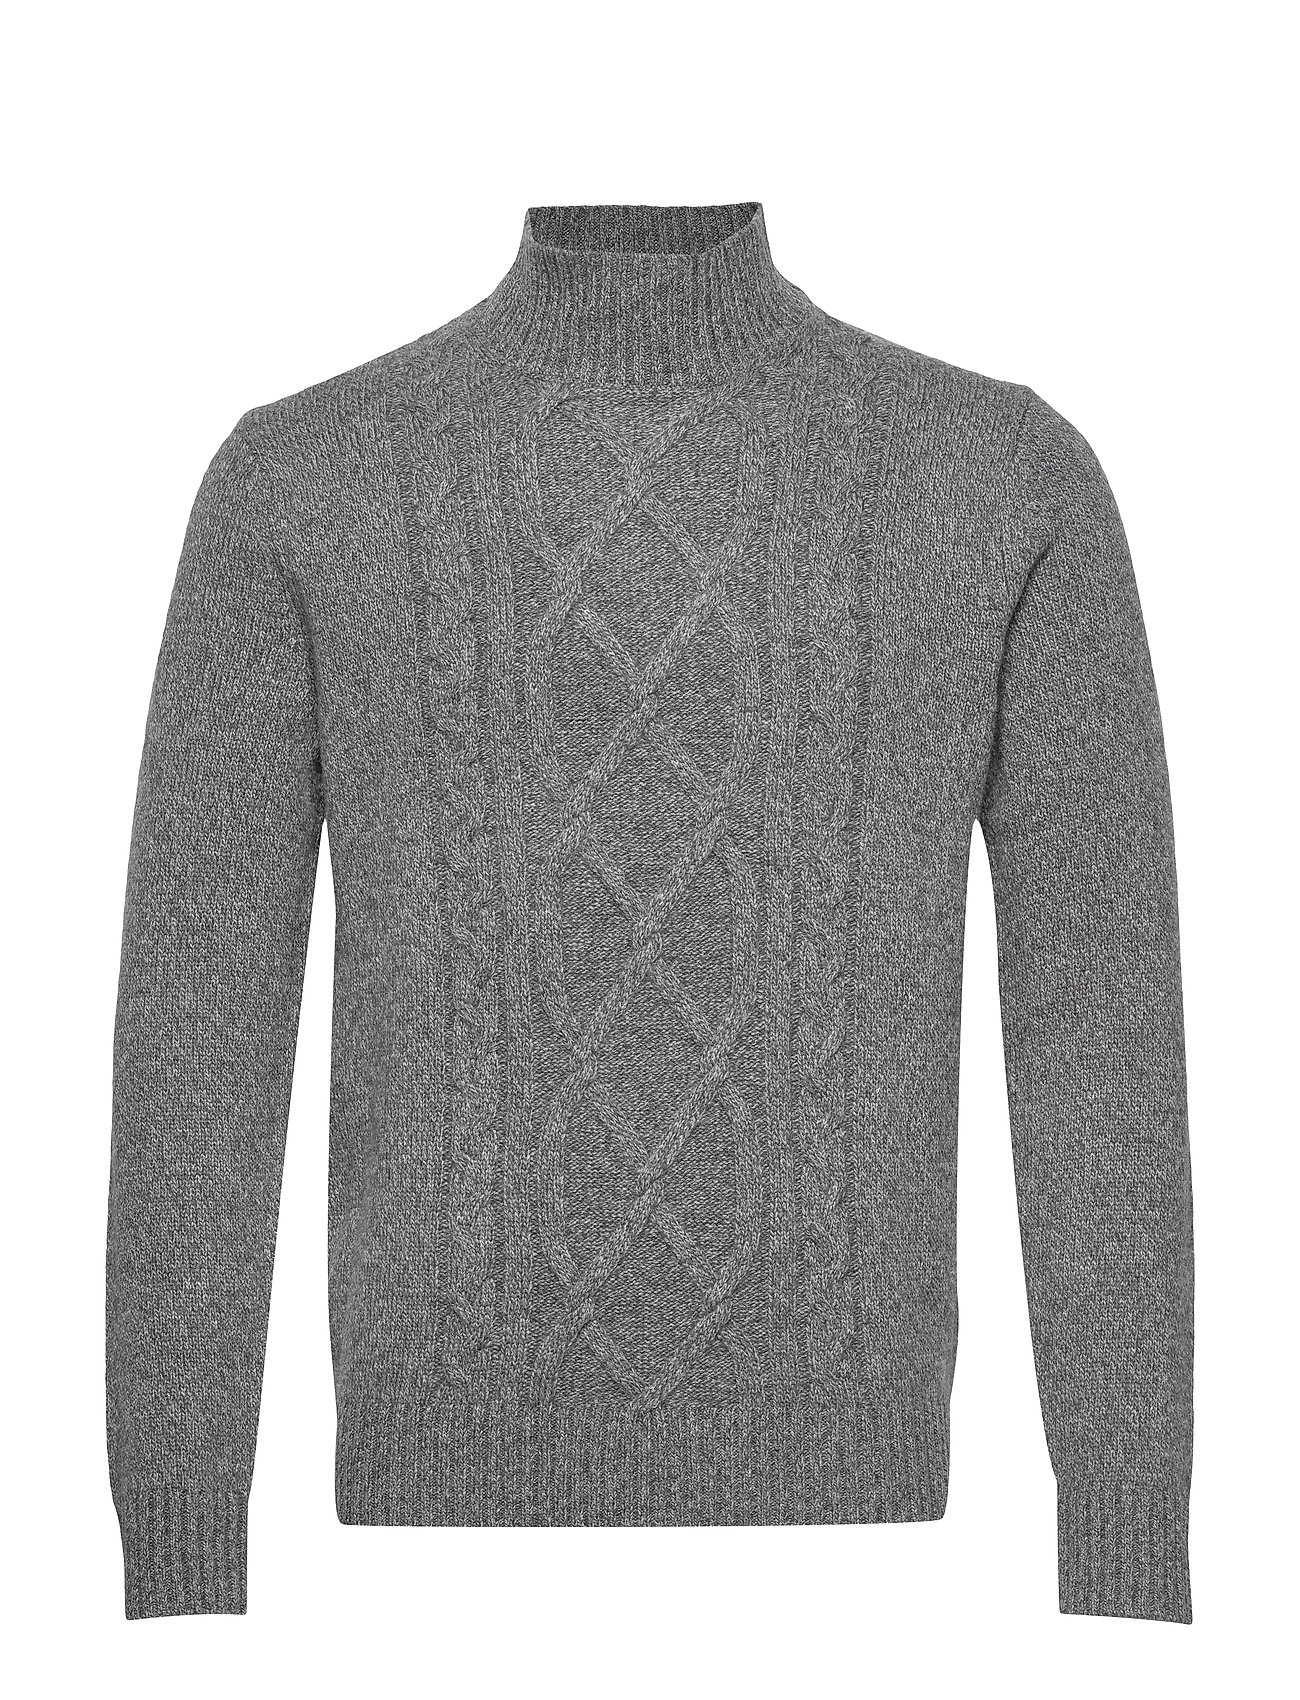 Banana Republic Wool-Blend Mock-Neck Sweater - DARK GREY